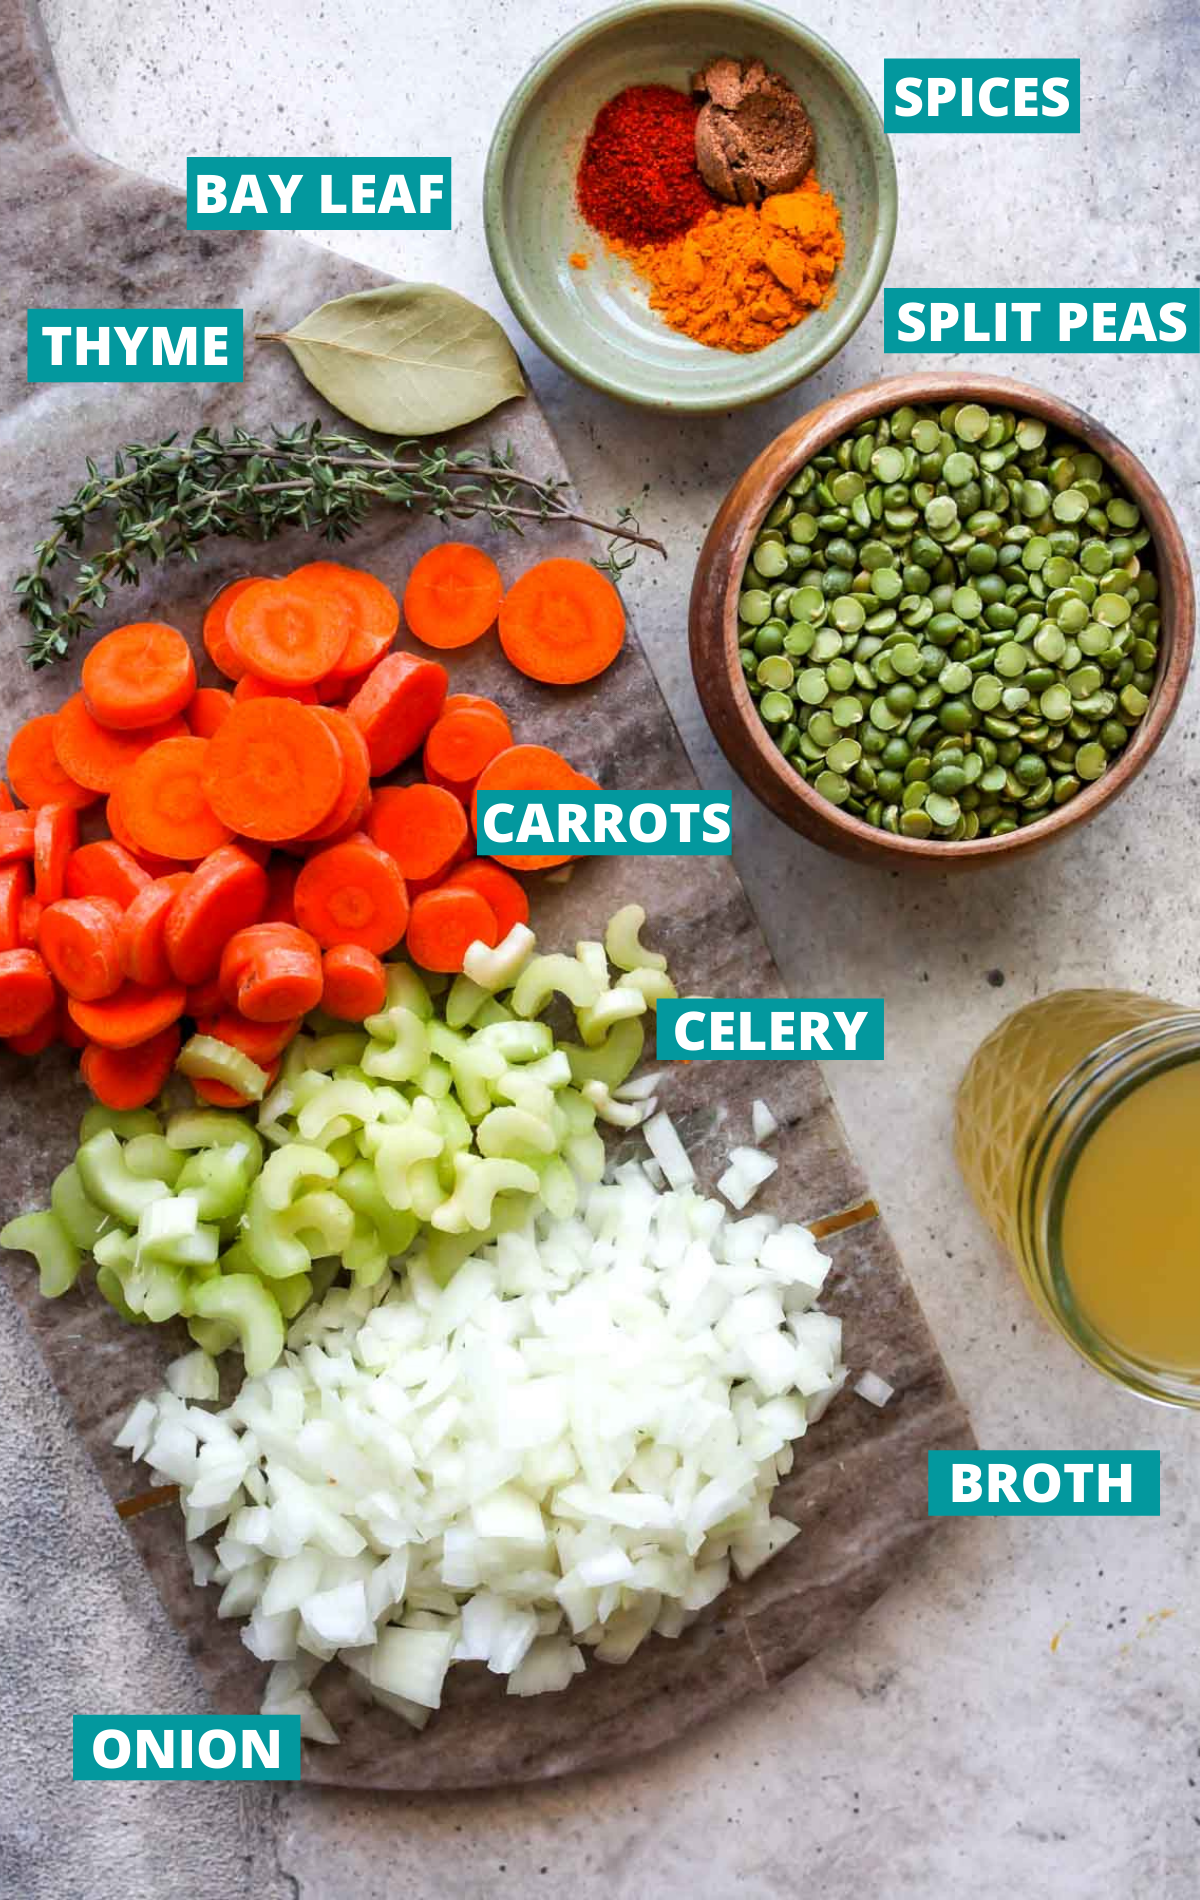 Split pea soup ingredients shown in separate bowls with blue labels